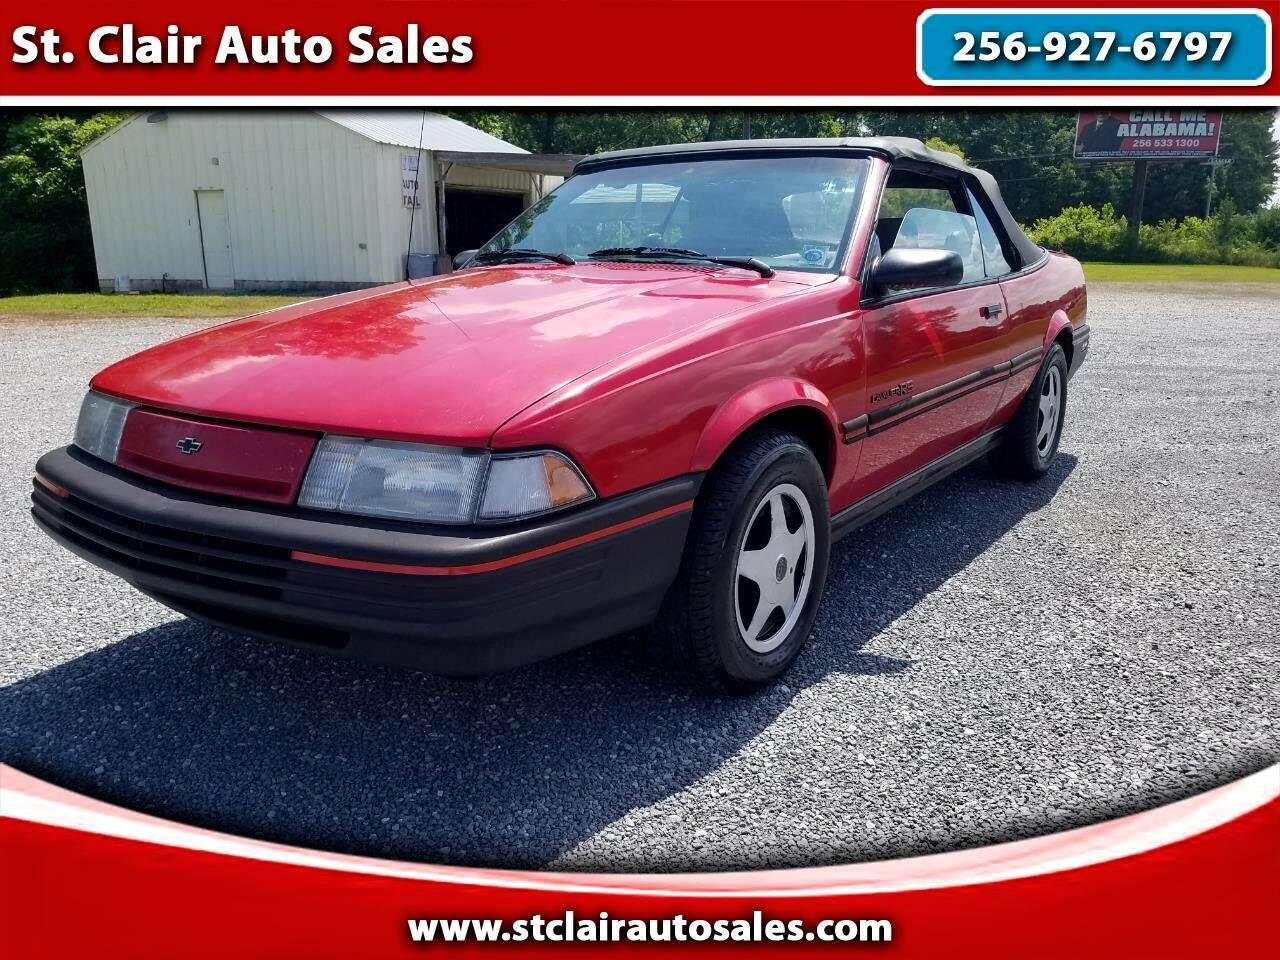 used 1992 chevrolet cavalier for sale carsforsale com 1992 chevrolet cavalier for sale carsforsale com